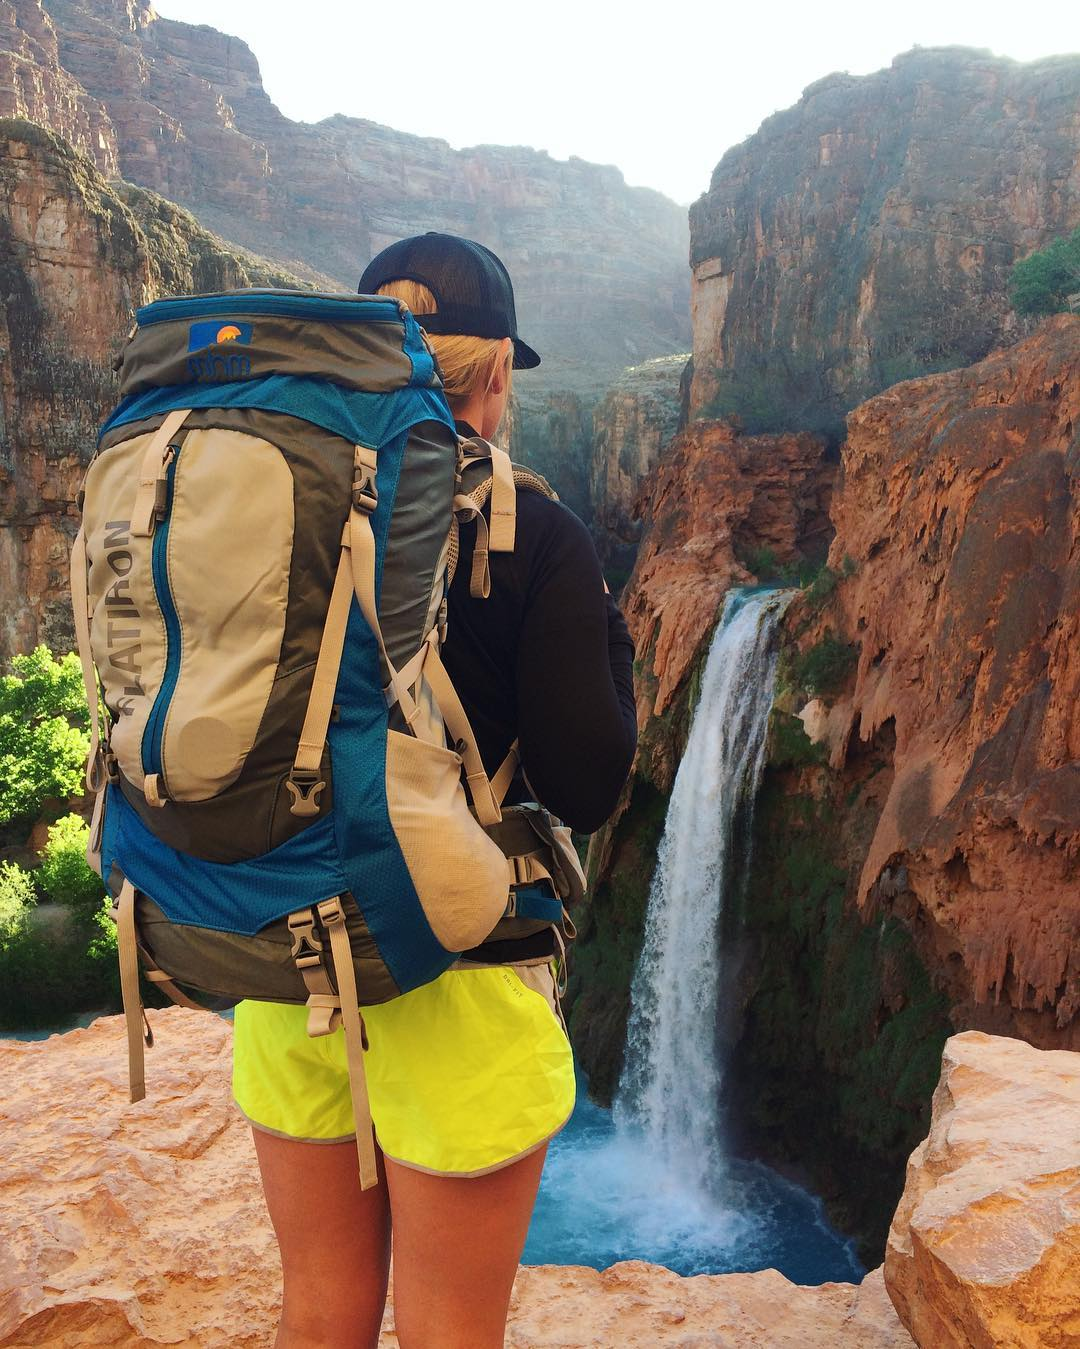 It's not so much about the destination as it is the journey. Although, in this case, the destination is pretty damn rad. MHM friend @kbauer824 at Havasu Falls. #MHMgear #PacksElevated #HavasuFalls #Havasupai